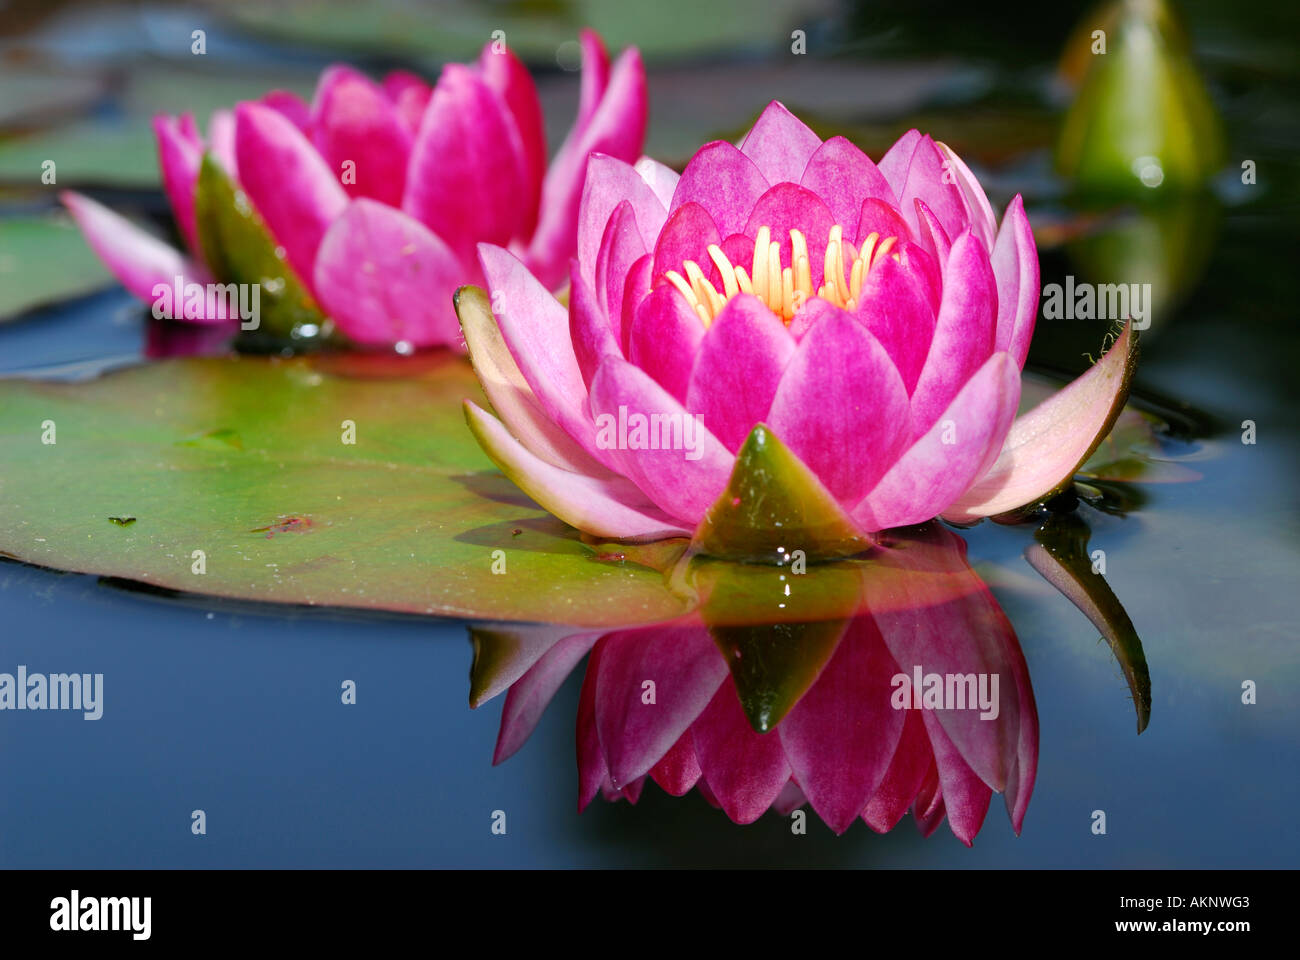 Nymphaeaceae Waterlily Flowers Lily Pads And Bud With Reflection In